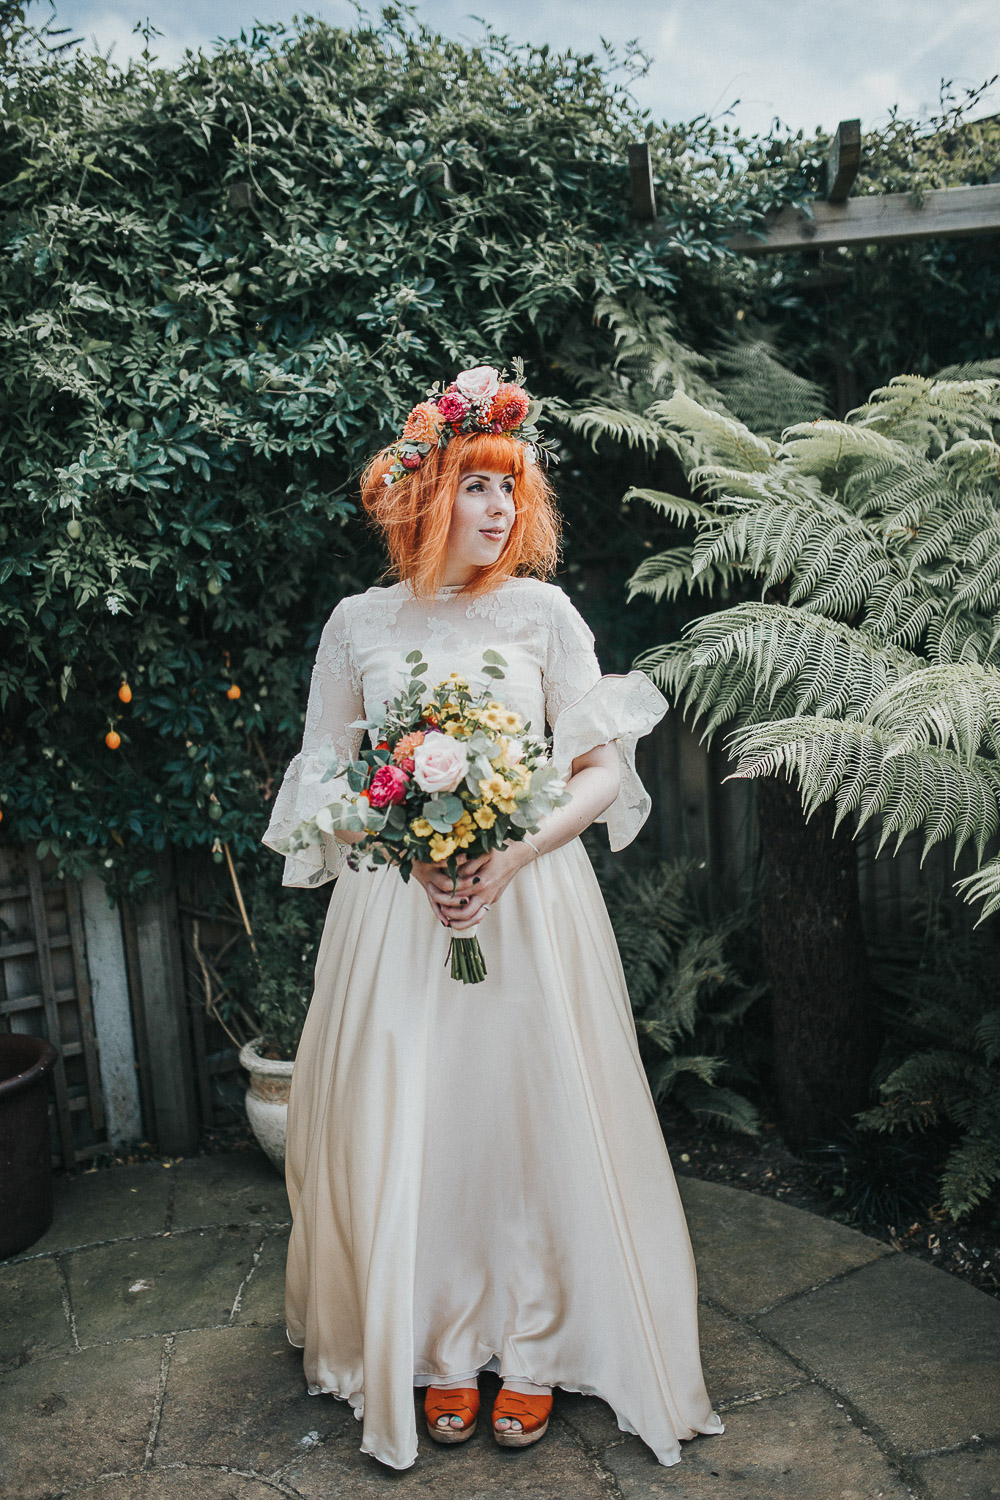 bride portraits, unique bride, alternative bride, colourful bride, edgy bride, alternative wedding dress, Colourful wedding, cool bride, cool groom, DIY wedding, eco friendly wedding, festival vibe, festival wedding, floral crown, fun wedding, ginger bride, gluten free catering, Handmade wedding, joasis photography, mulberry lodge, mulberry lodge weddings, outdoor wedding, pom poms, quirky bride, red hair bride, relaxed wedding, rustic wedding, Smugglers, vegan catering, vintage wedding dress, wedding games, woodland wedding